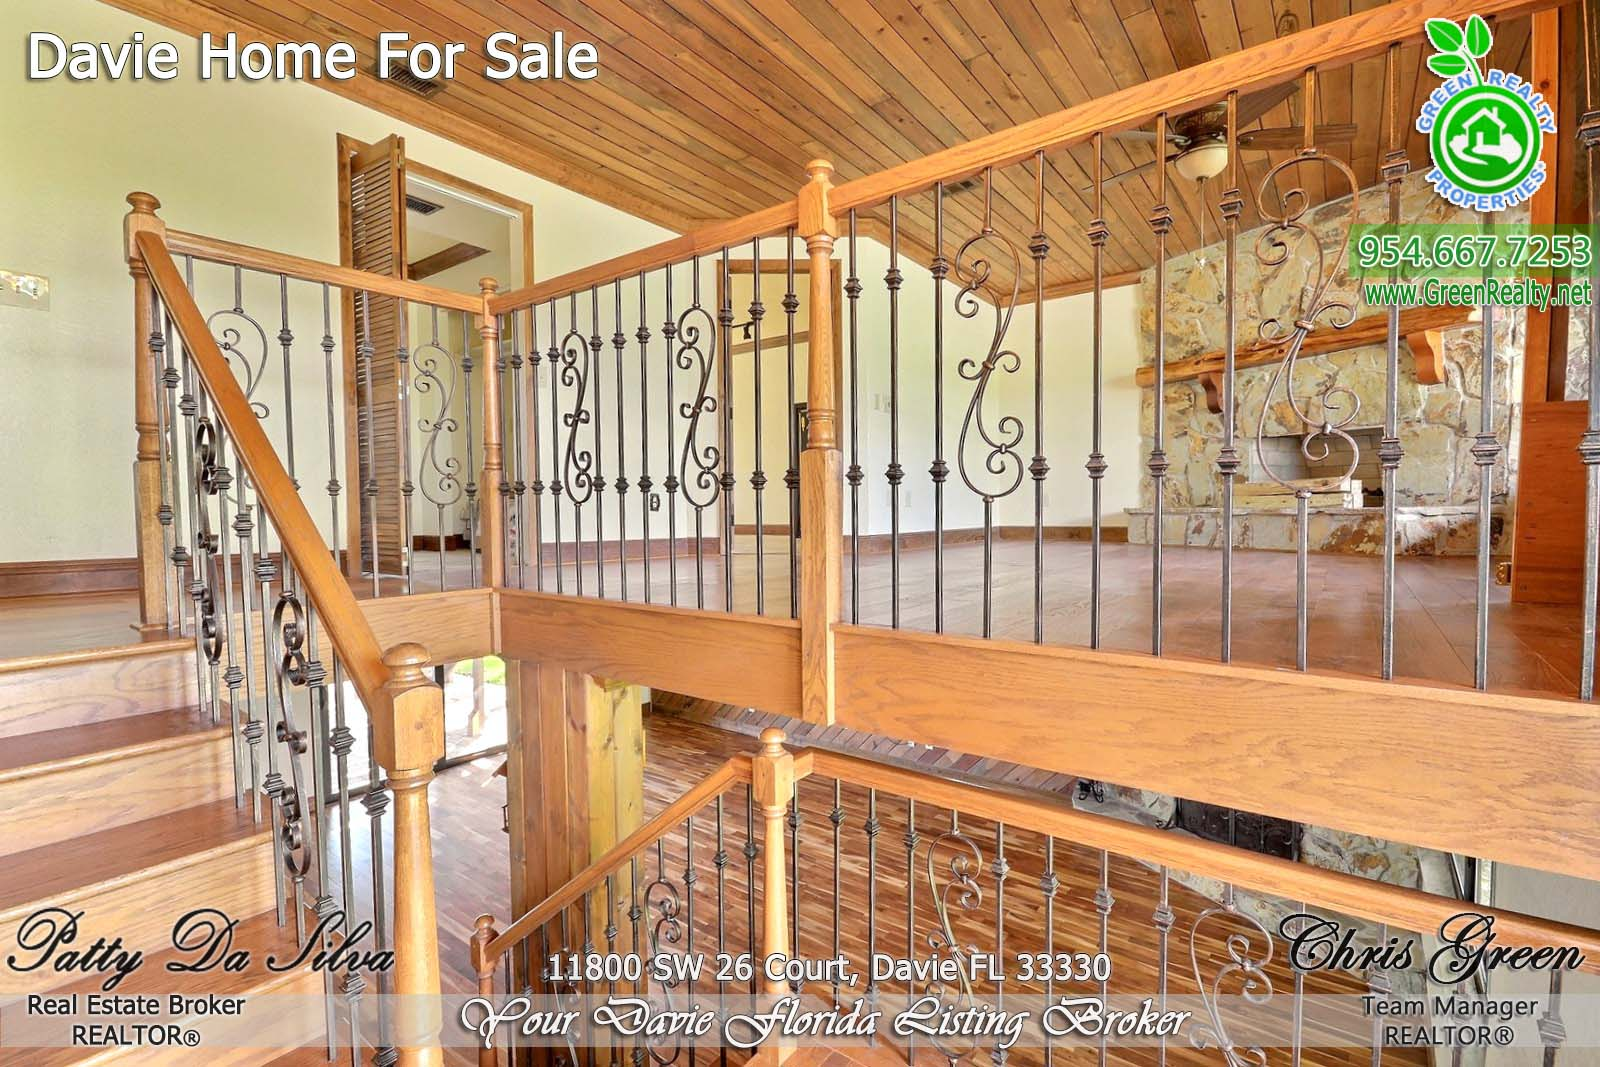 19 Davie Equestrian Homes For Sale (2)